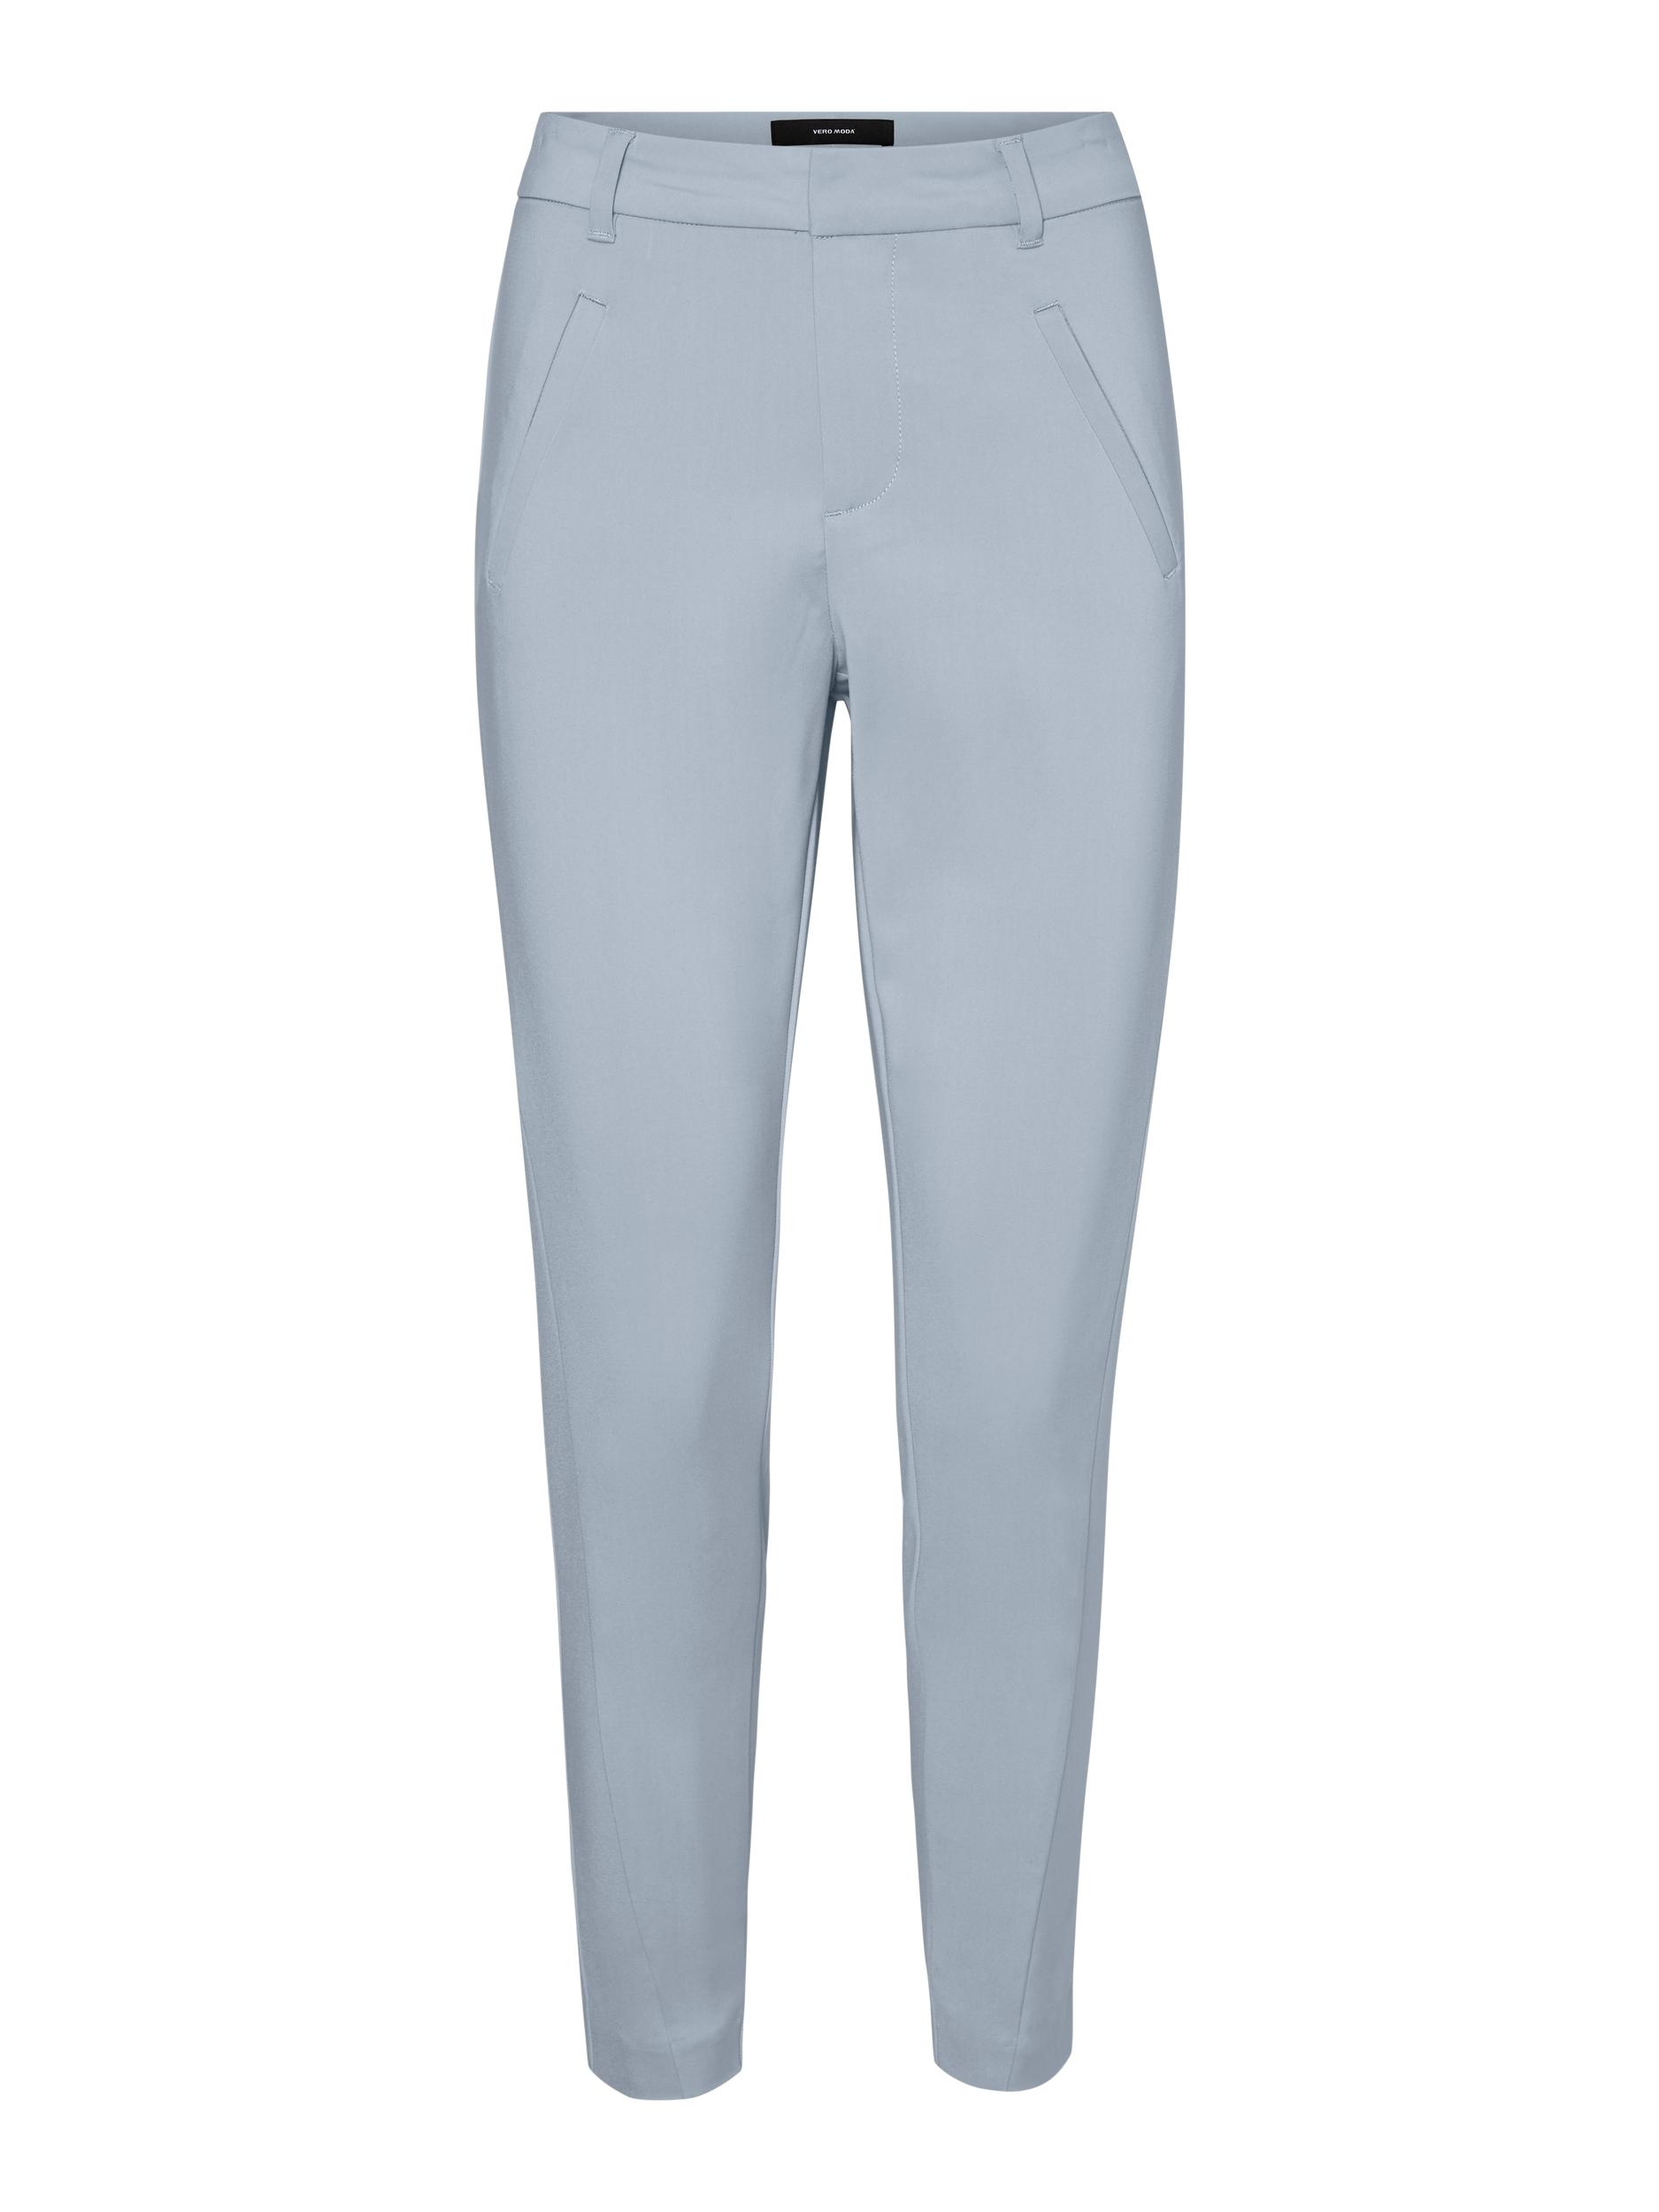 In-Mood Victoria Pant